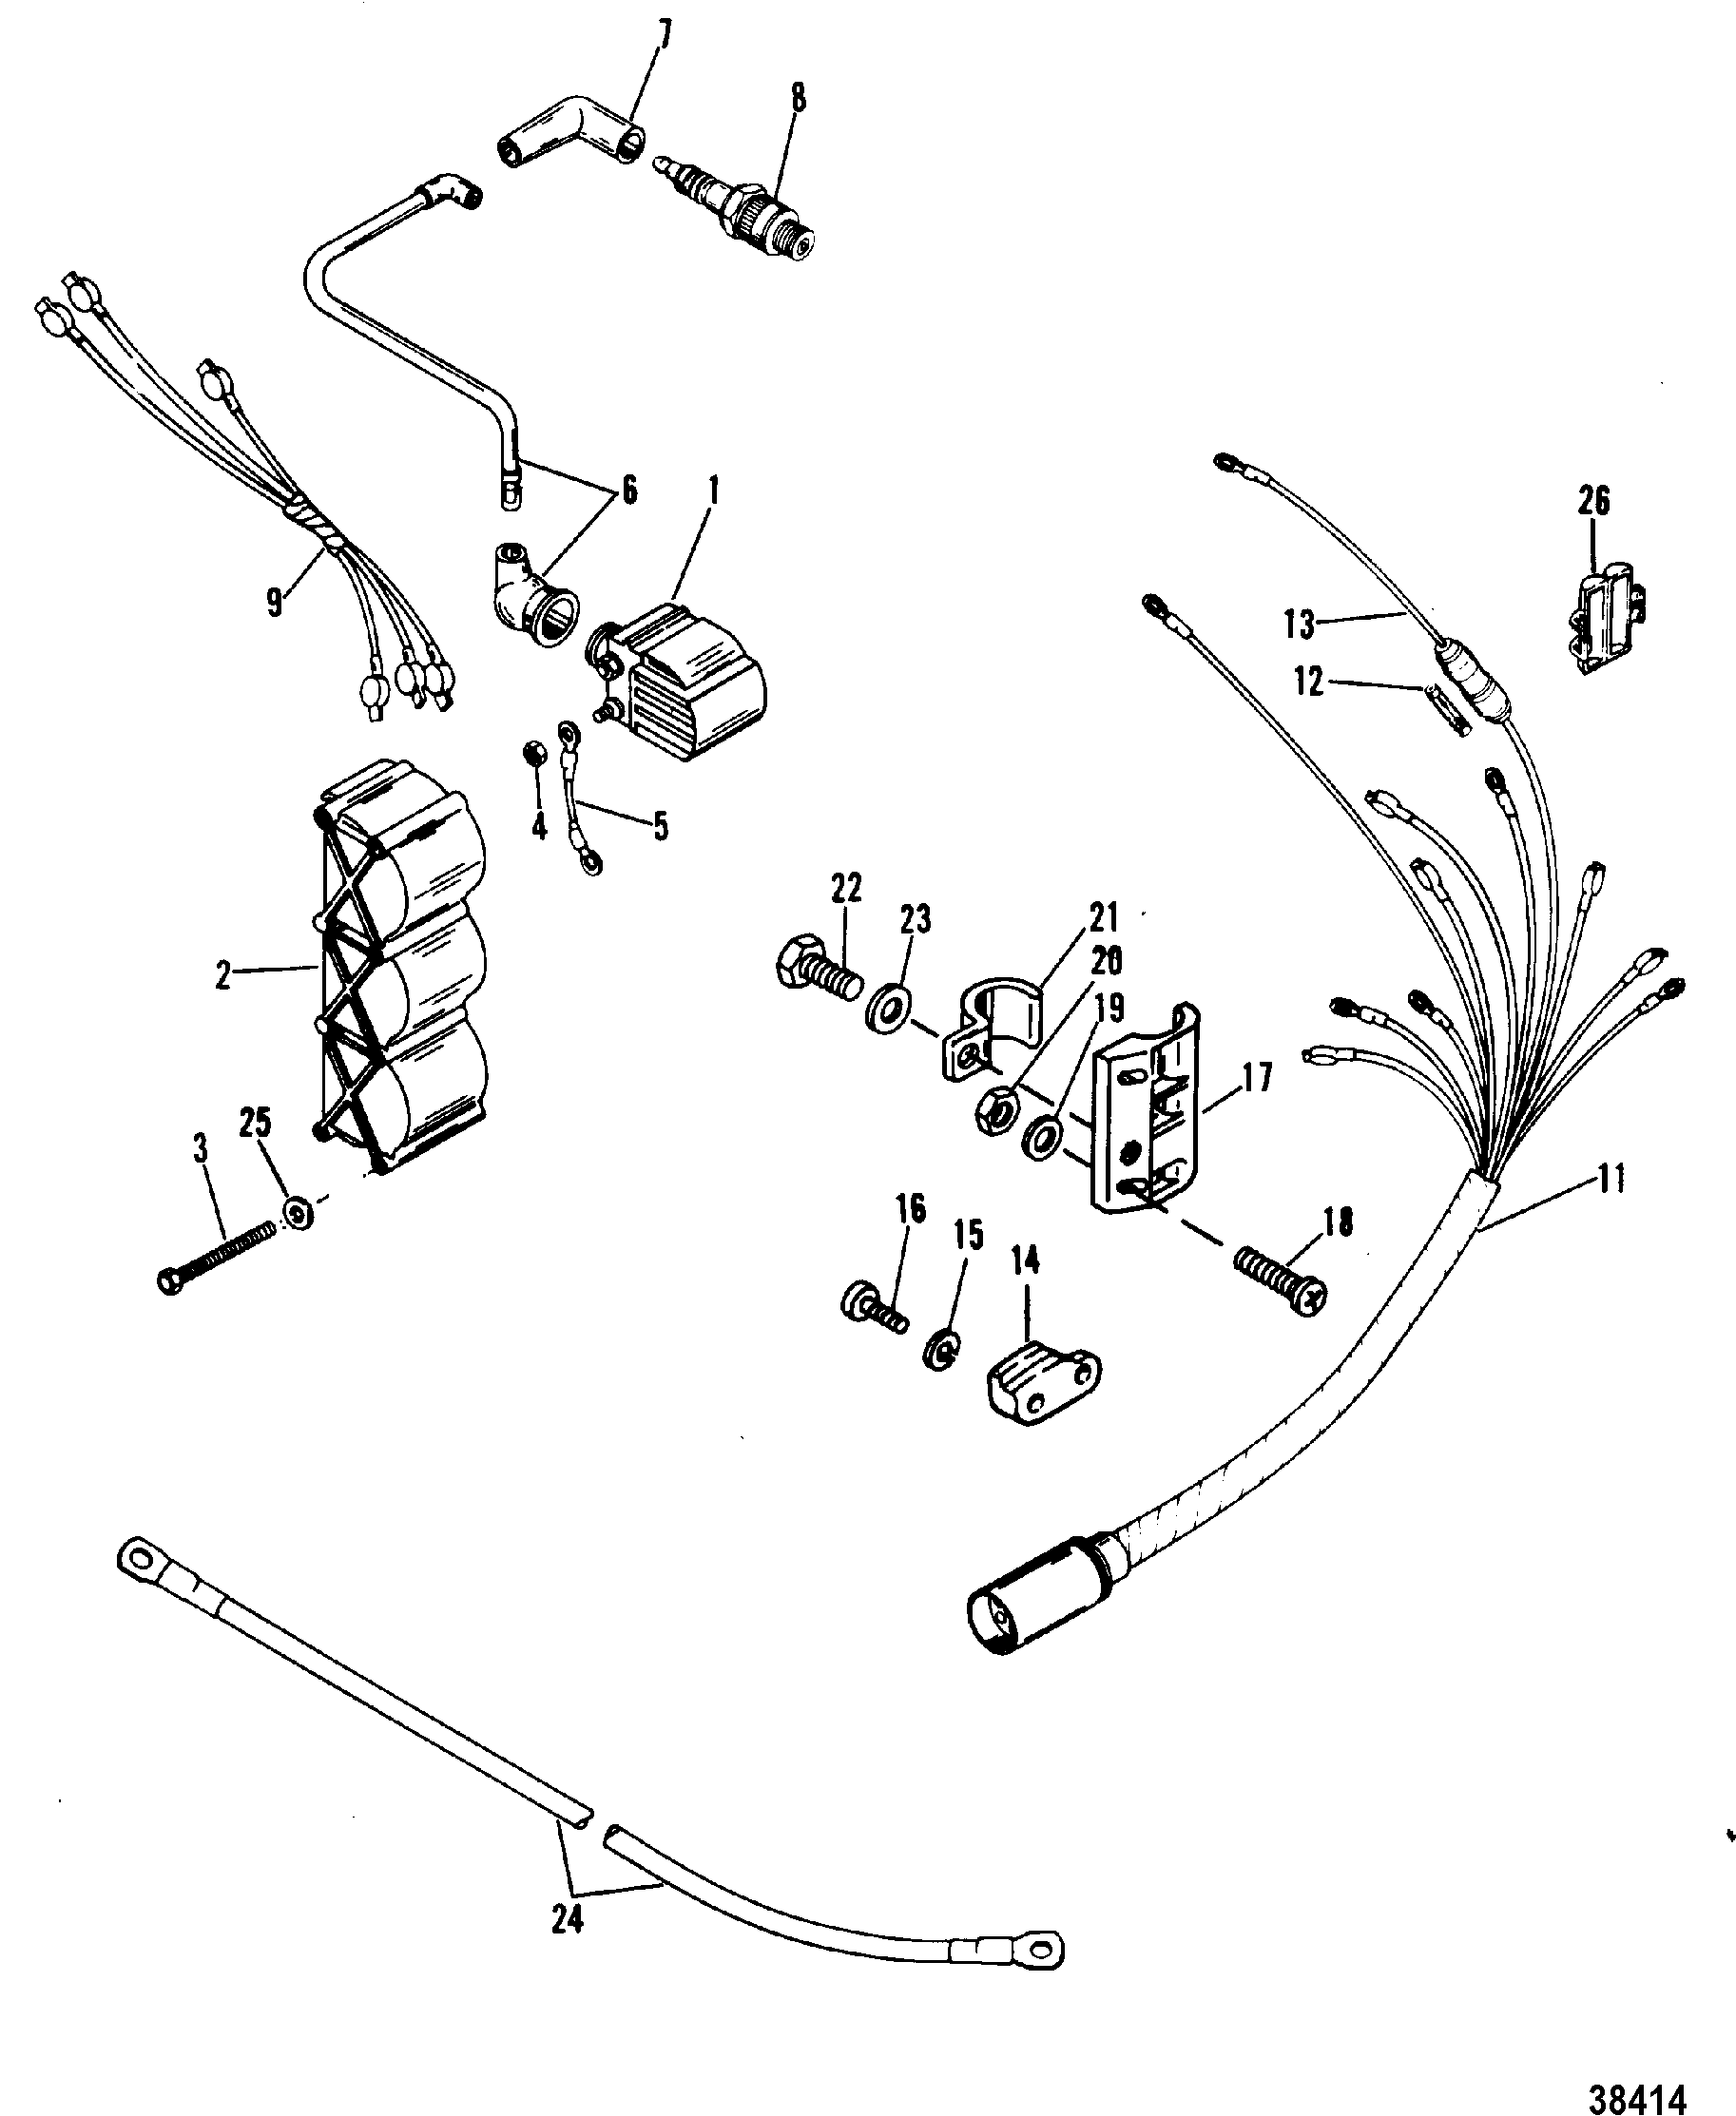 1979 Mercury Outboard Internal Wiring Harness Diagram Auto